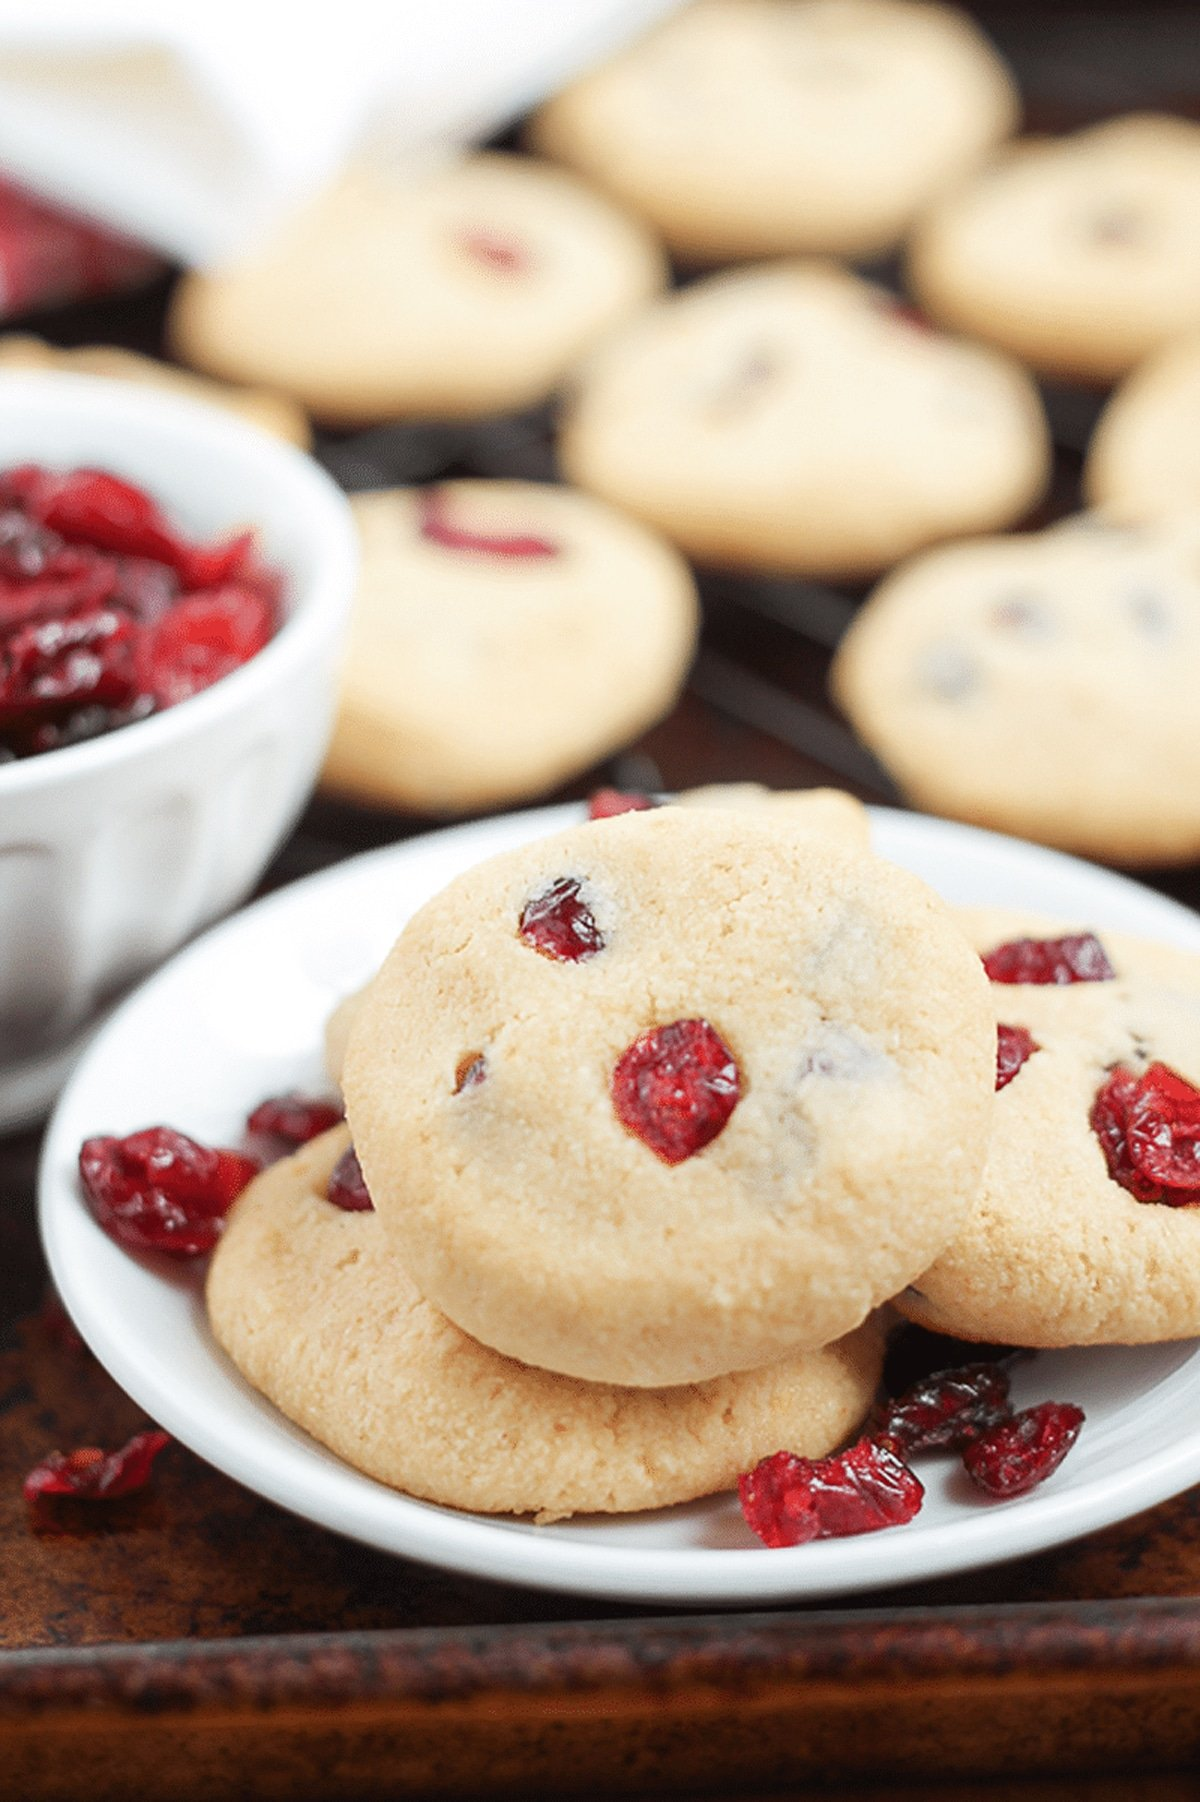 White bowl containing 3 Cranberry Cookies, cranberries and cookies on table.